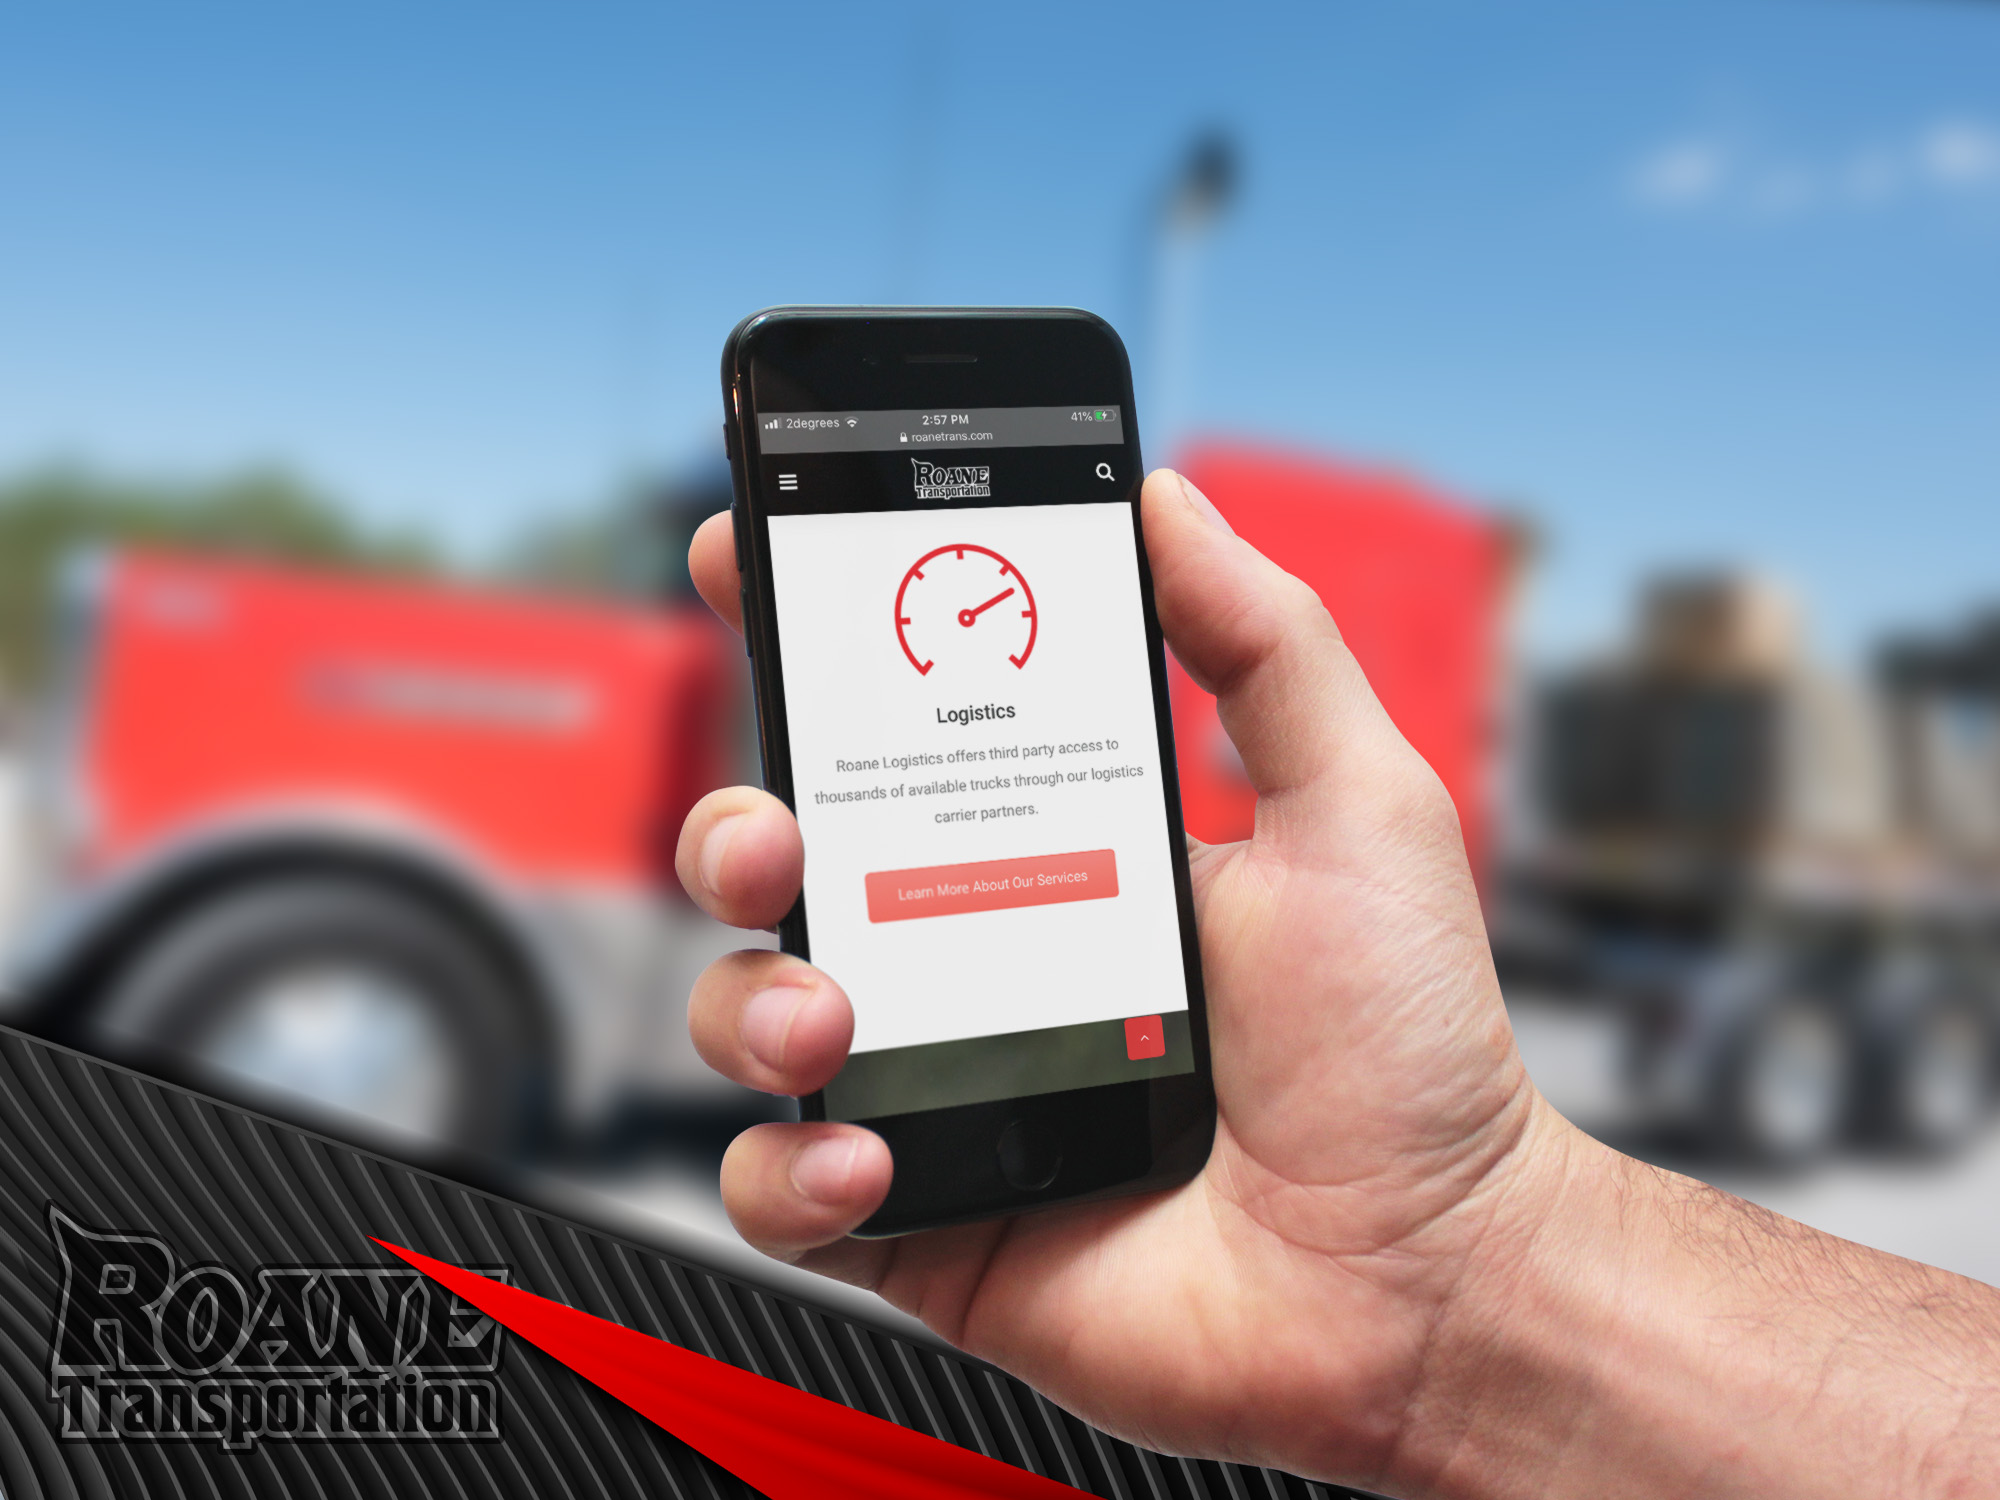 hand holding a cellphone with a trucking website displayed on the screen